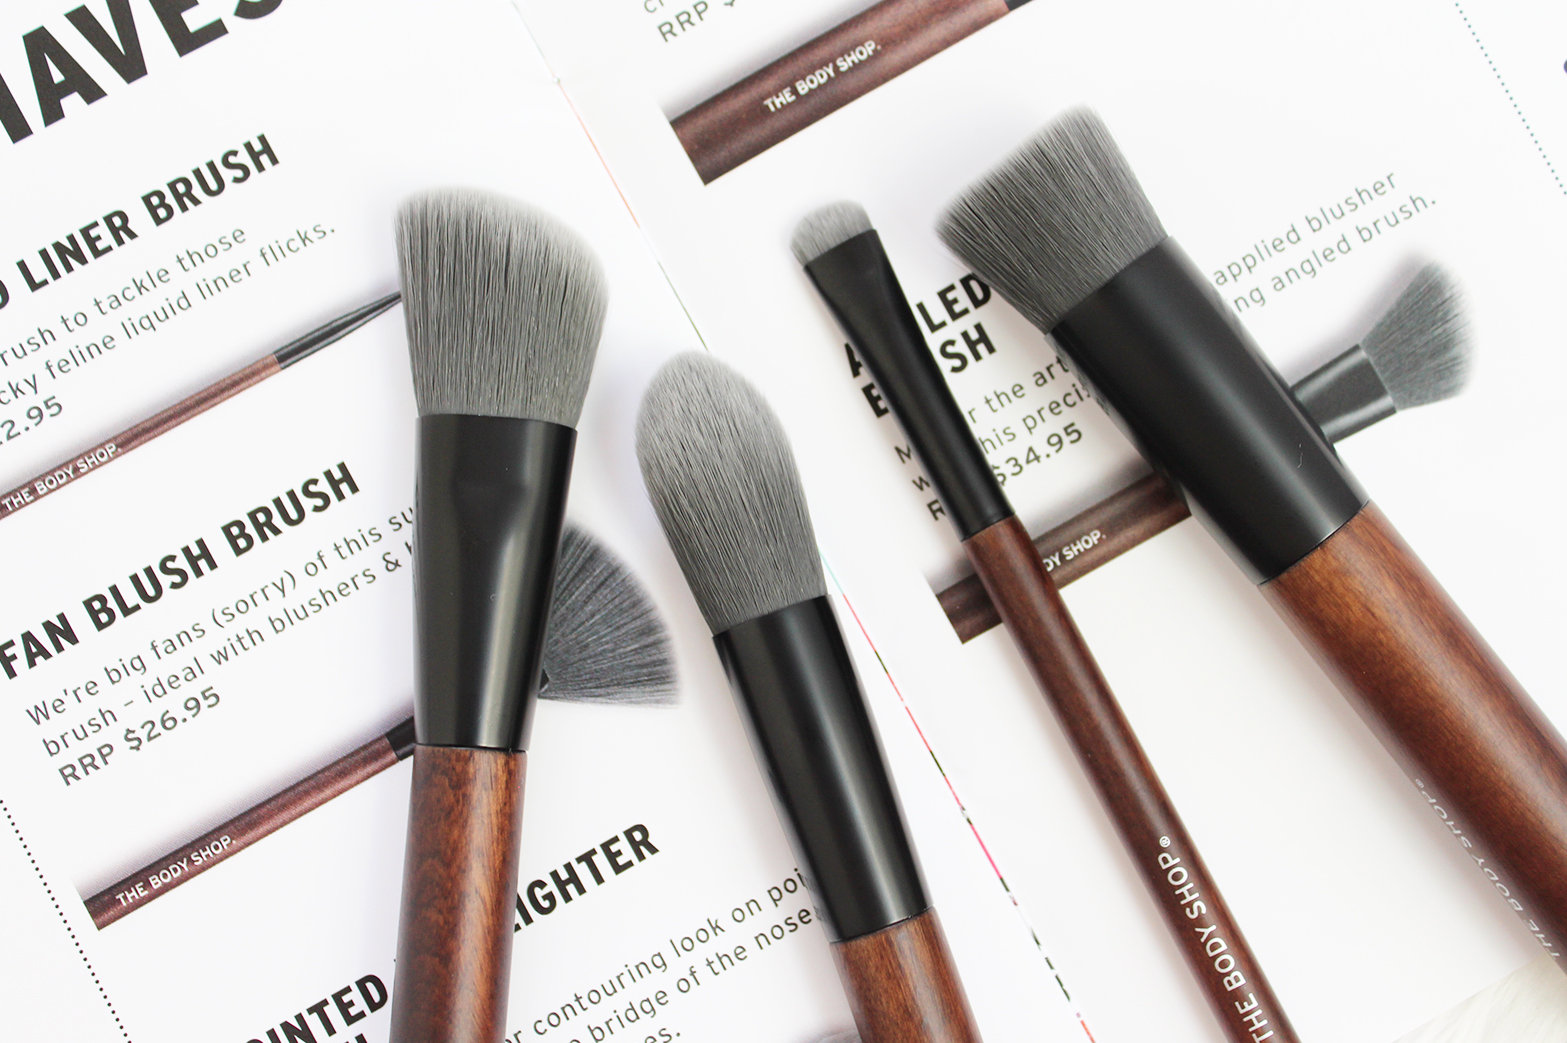 THE BODY SHOP | New Customisable Eyeshadow Palettes + Brushes - CassandraMyee